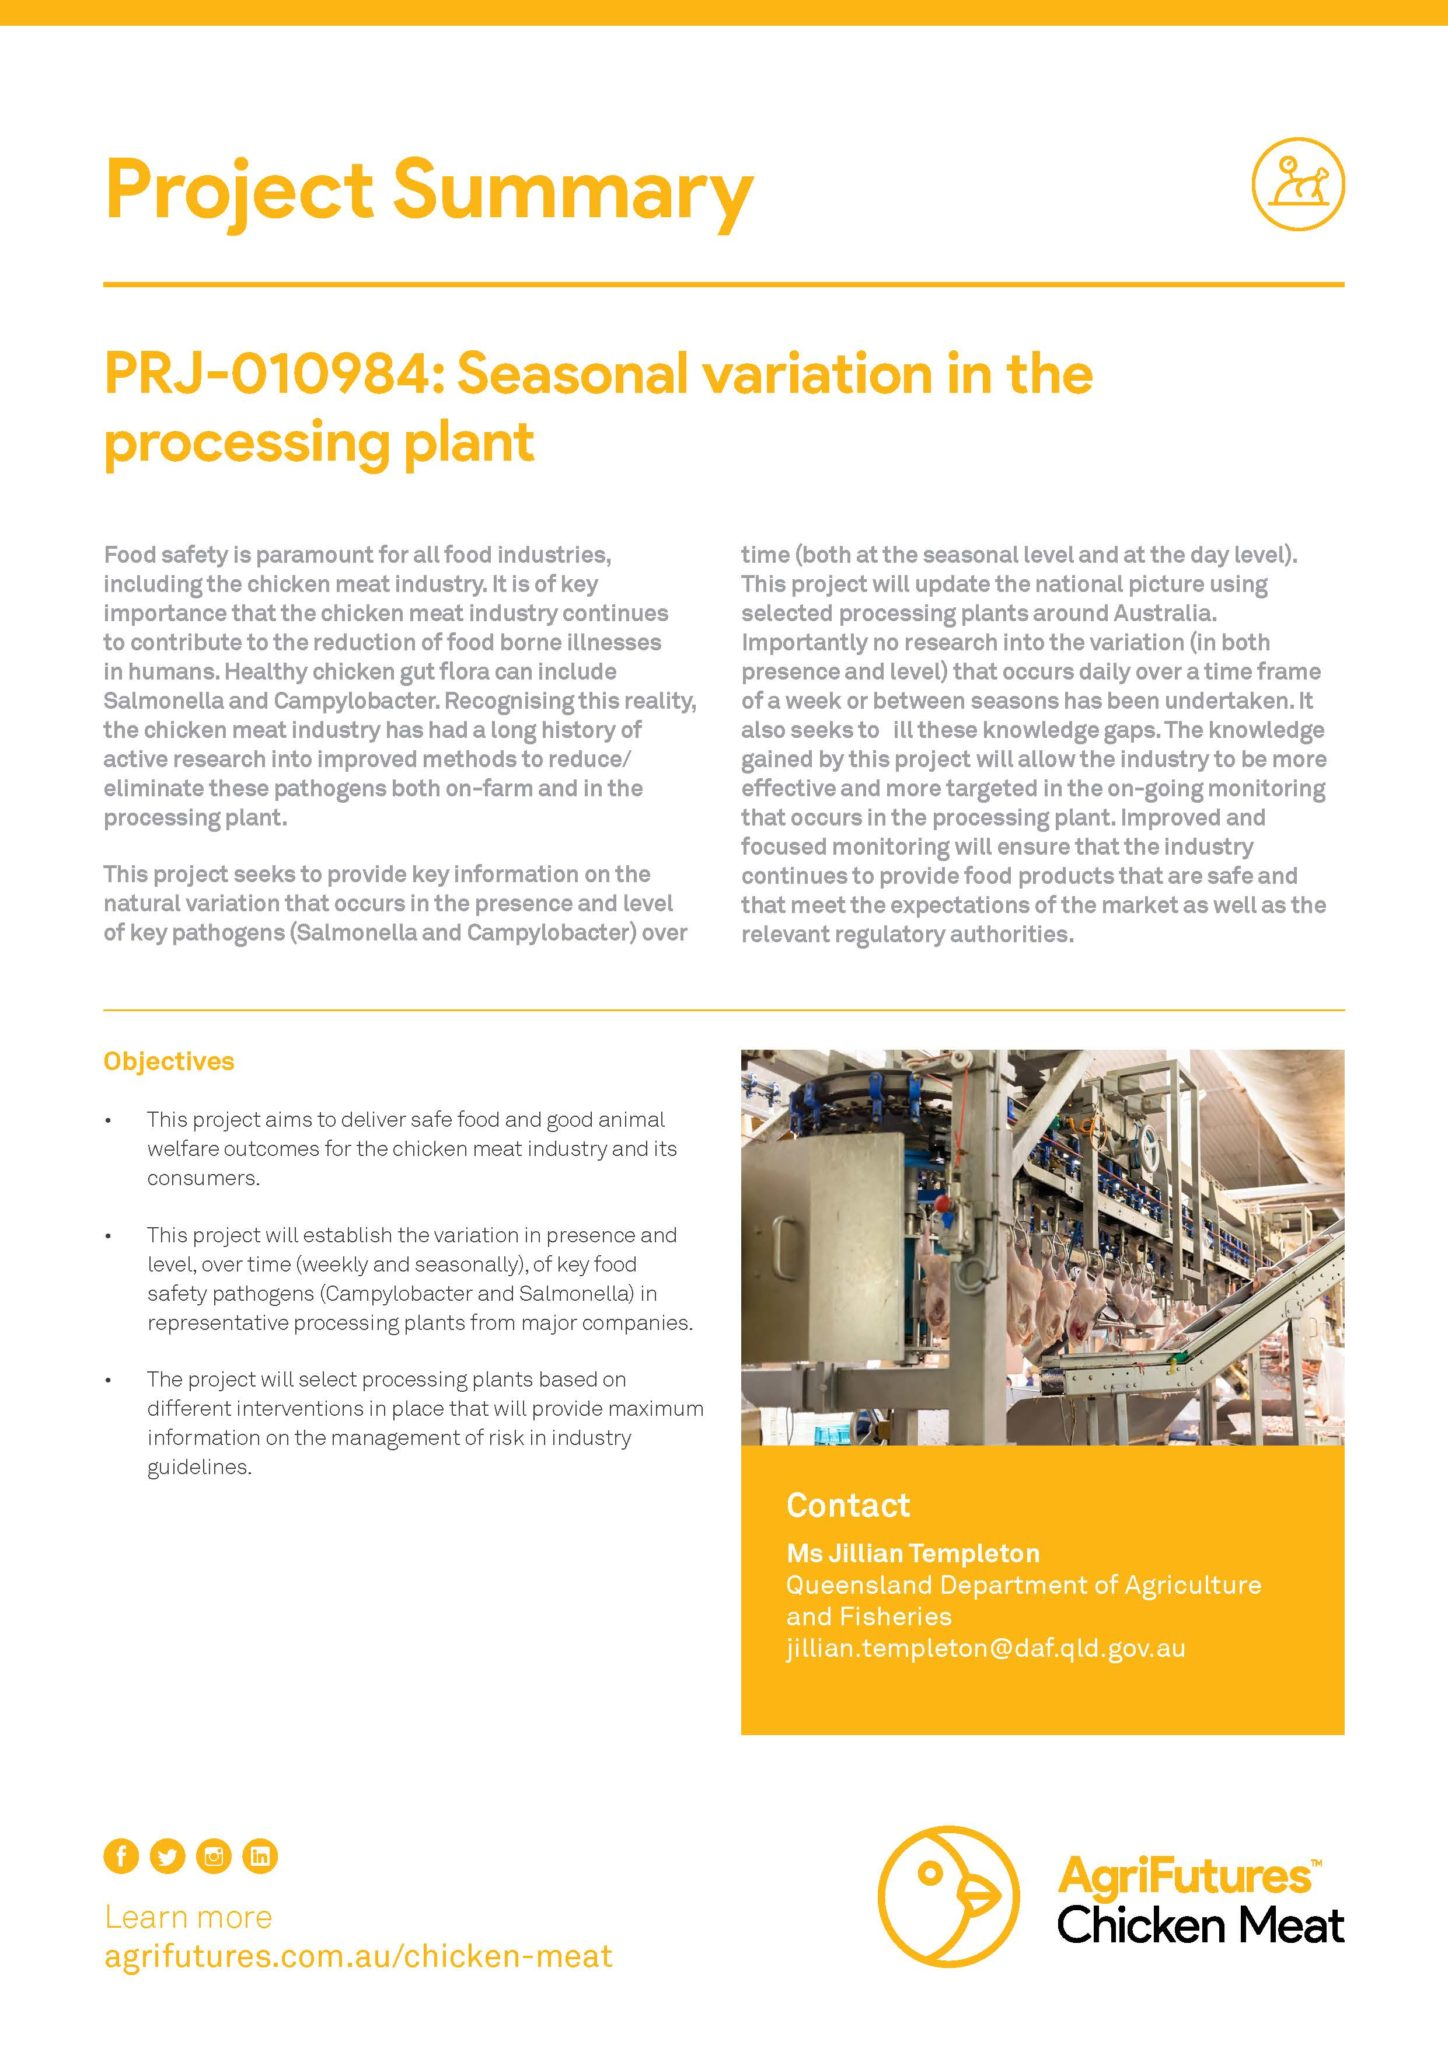 Project Summary: Seasonal variation in the processing plant - image